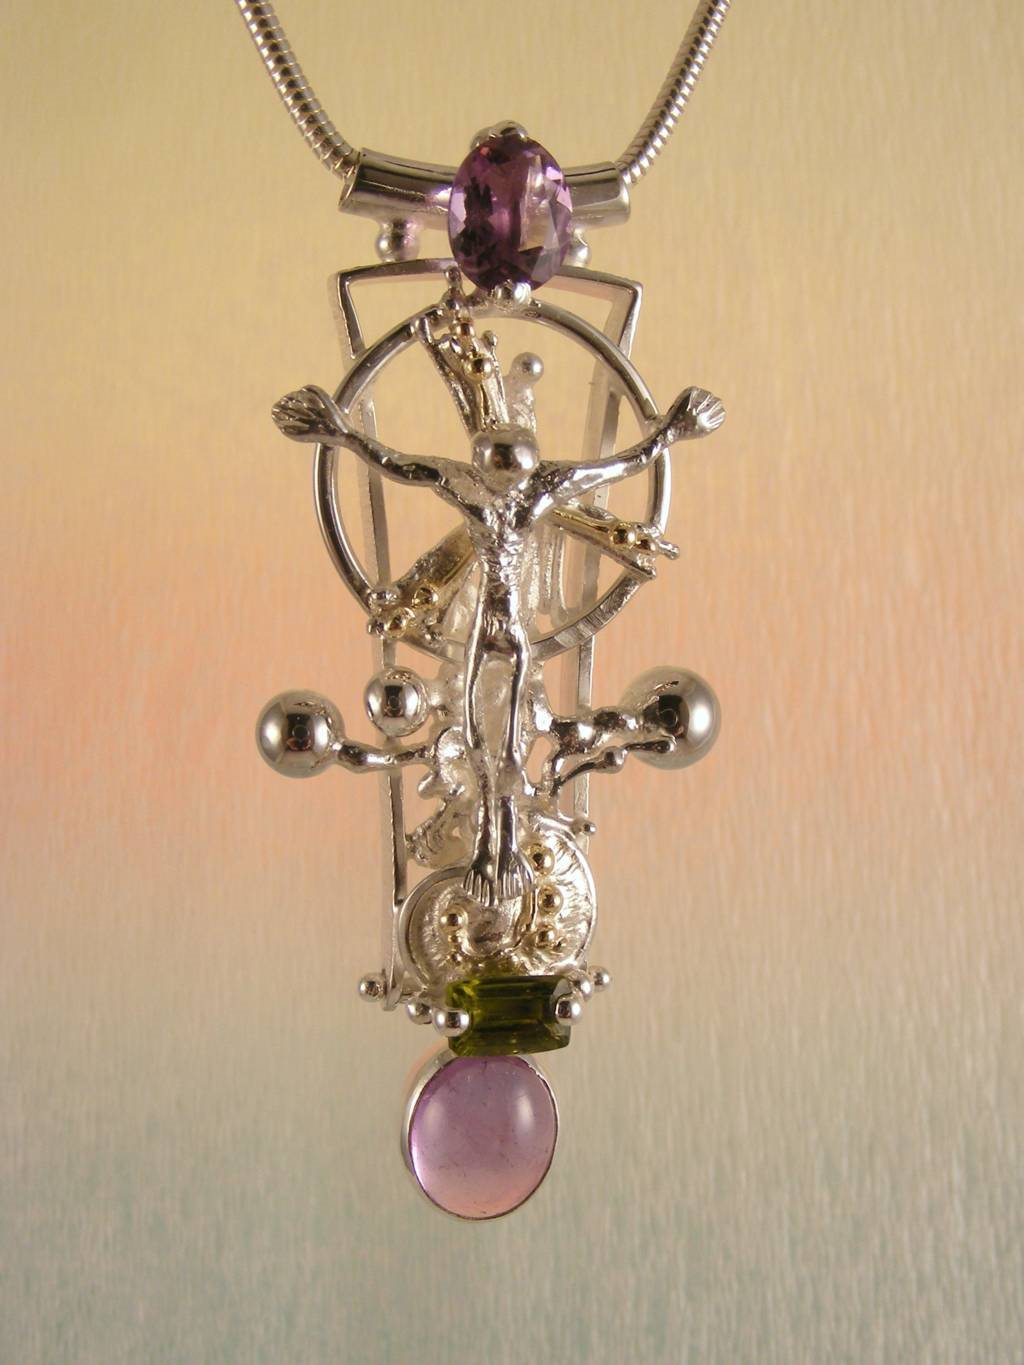 Follow us, Join us on Facebook, and visit http://www.designerartjewellery.com, Gregory Pyra Piro One of a Kind Handmade Jewellery in London in Silver and Gold, Bespoke Jewellery with Semi Precious Stones, #Pendant 3050